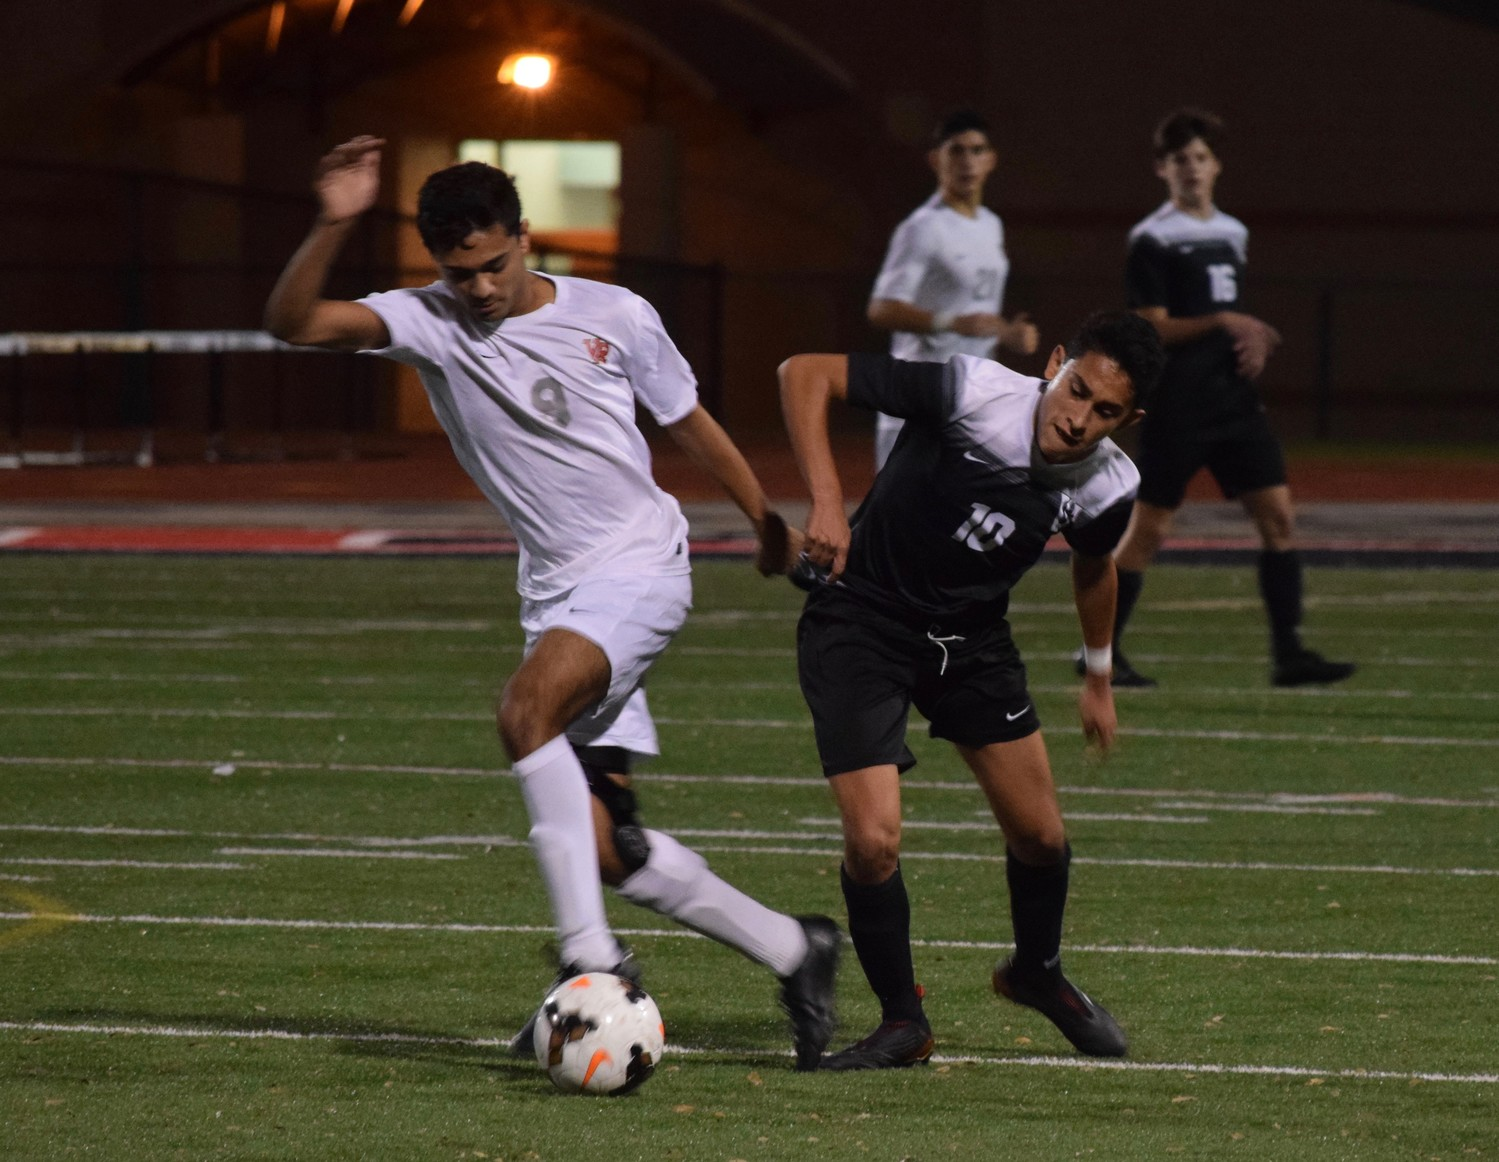 Keshav Naick, left, of Vista Ridge and Juan Gonzalez of Vandegrift battle for the ball during a district game Tuesday night at Vista Ridge High School. The Rangers won 3-2.